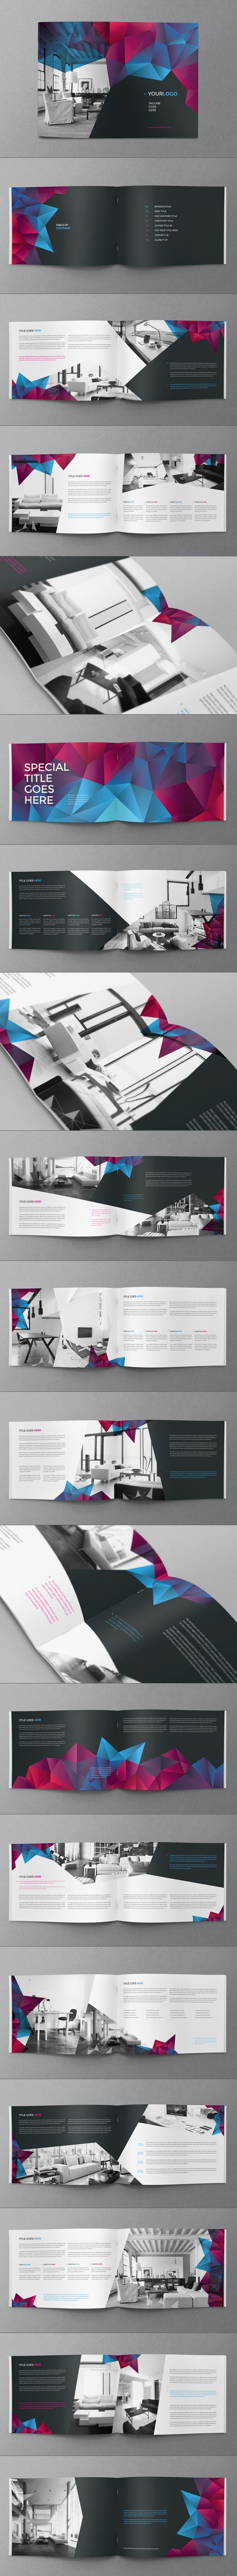 Cool Modern Brochure. Download here: http://graphicriver.net/item/cool-modern-brochure/7813777?ref=abradesign #brochure #design